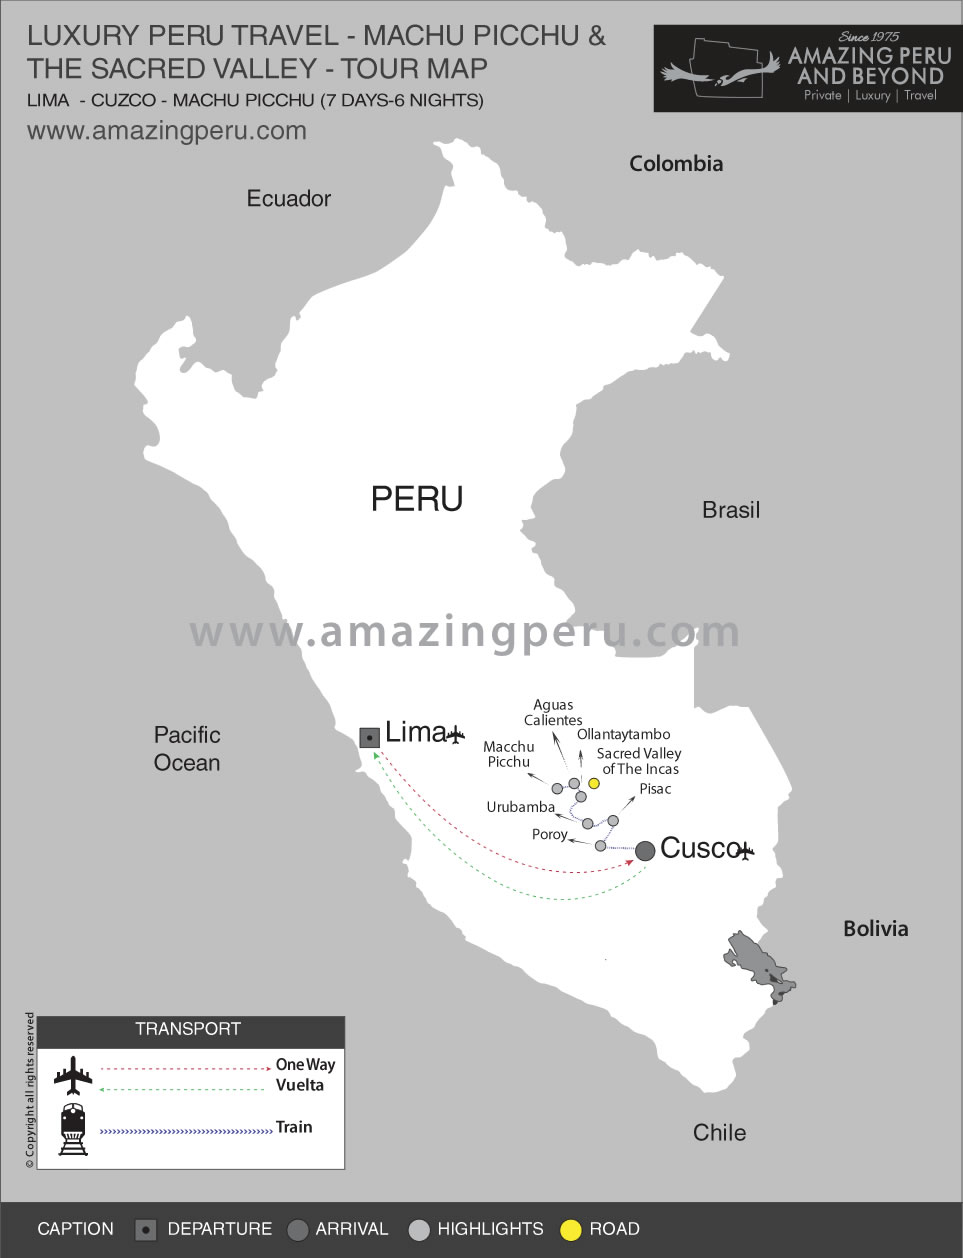 Luxury Peru Travel: Machu Picchu & the Sacred Valley - 7 days / 6 nights.